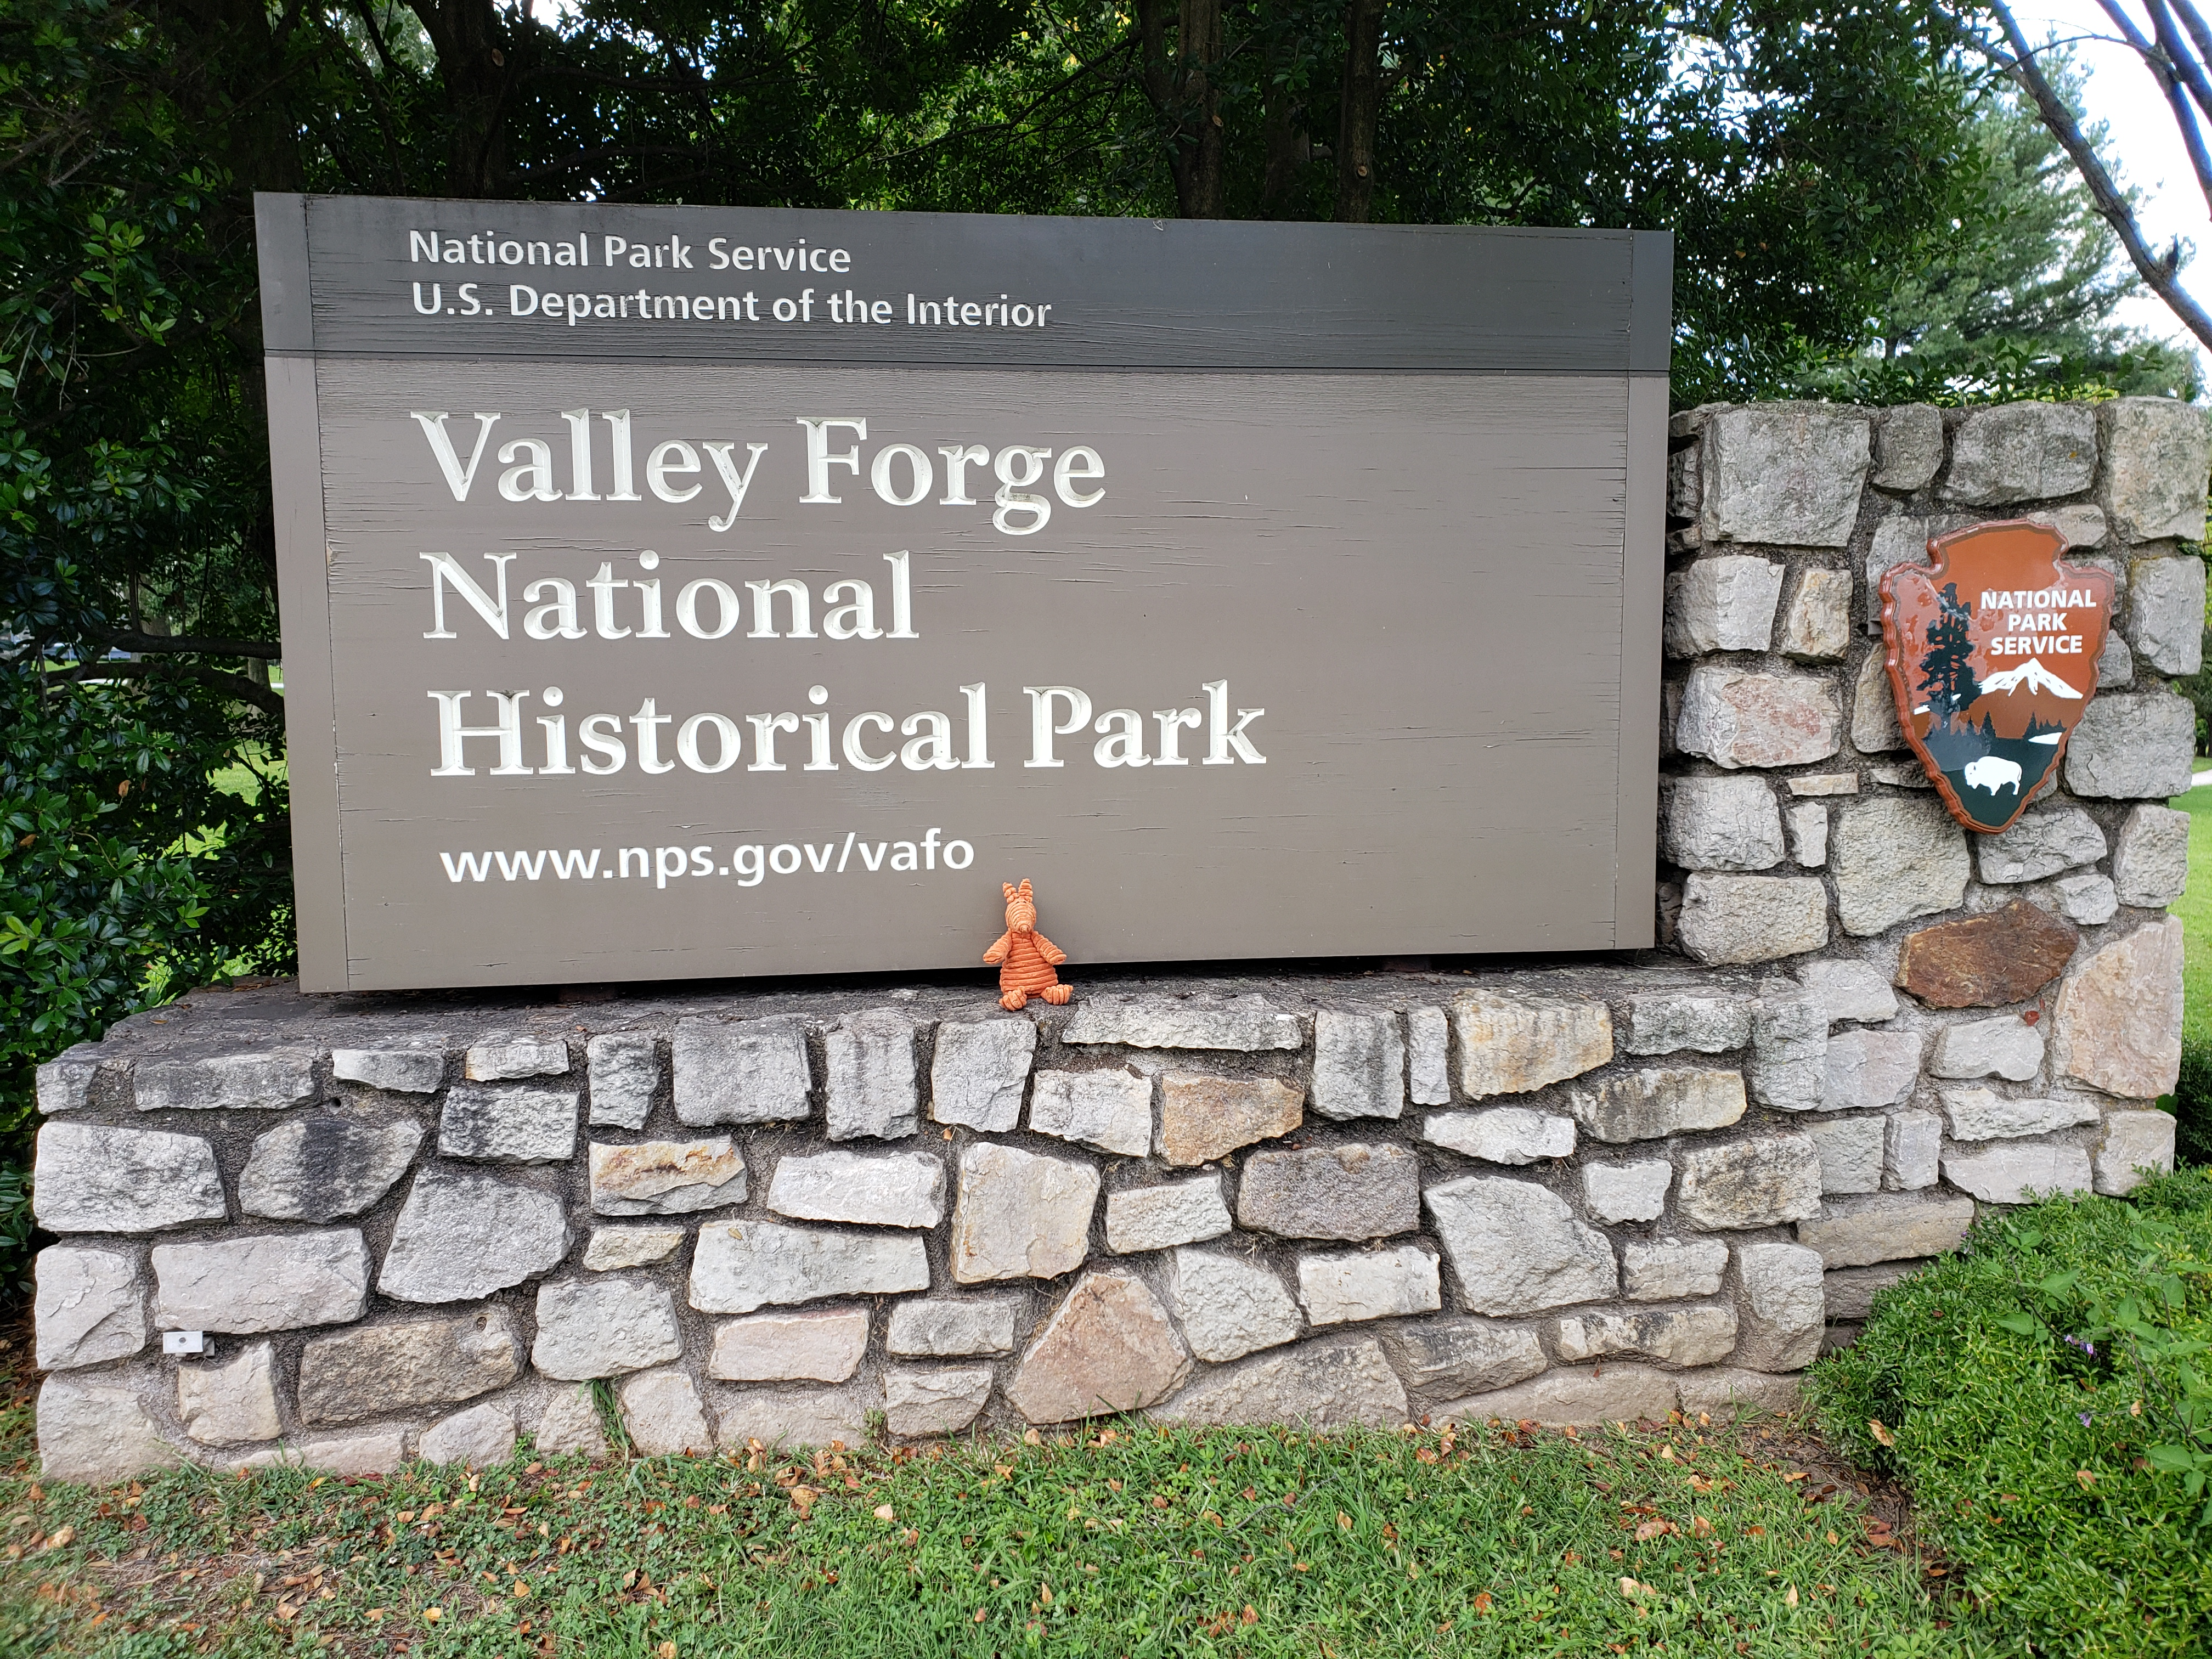 Valley Forge NHP